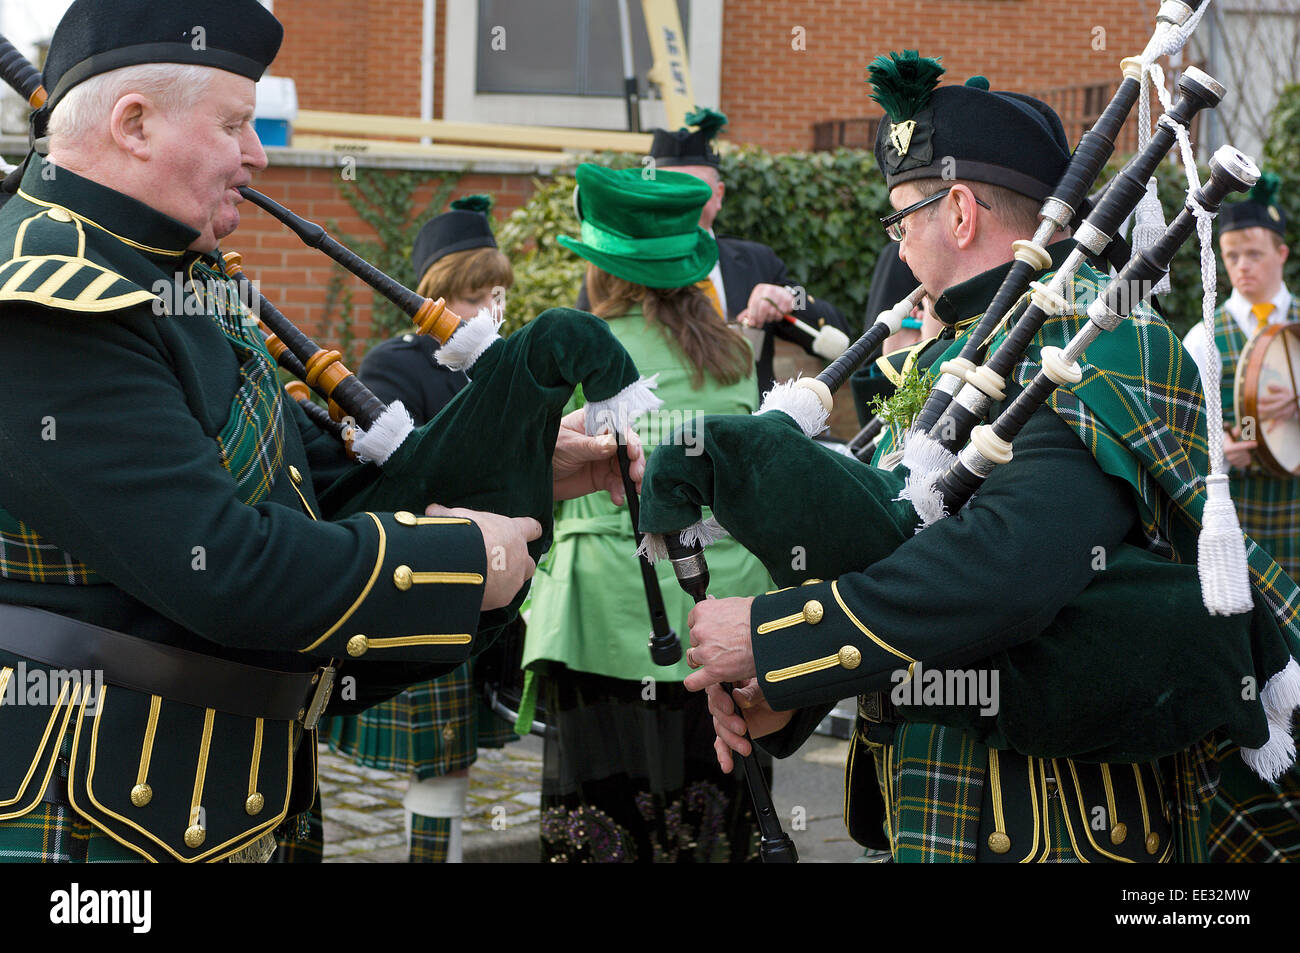 Irish pipers warm up on their bagpipes before the St. Patrick's Day parade in Willesden Green. - Stock Image